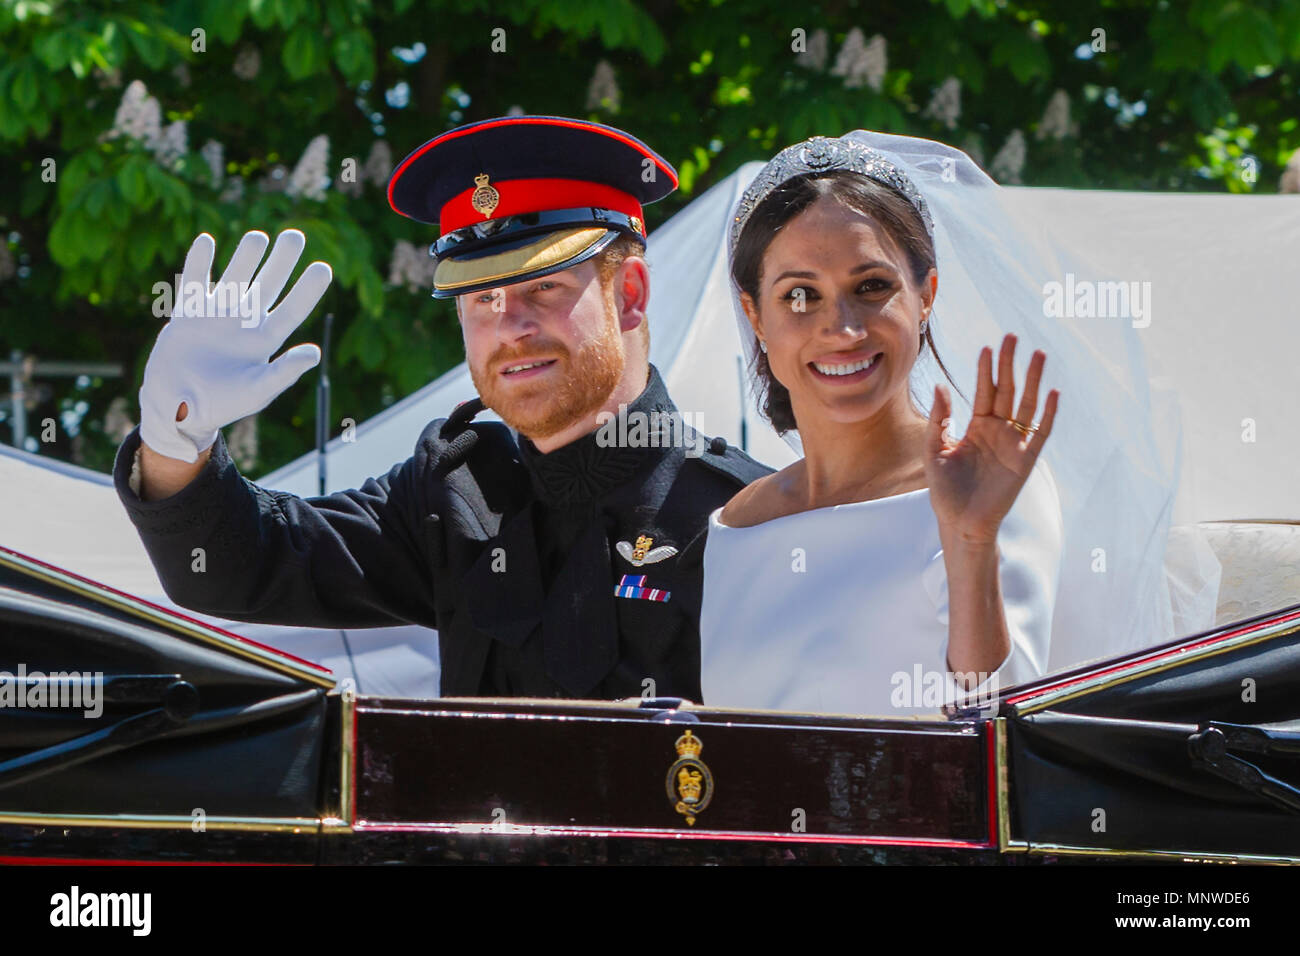 Prince harry and Meghan Markel, in the carriage after their wedding ceremony royal wedding, Windsor, prince harry, Stock Photo